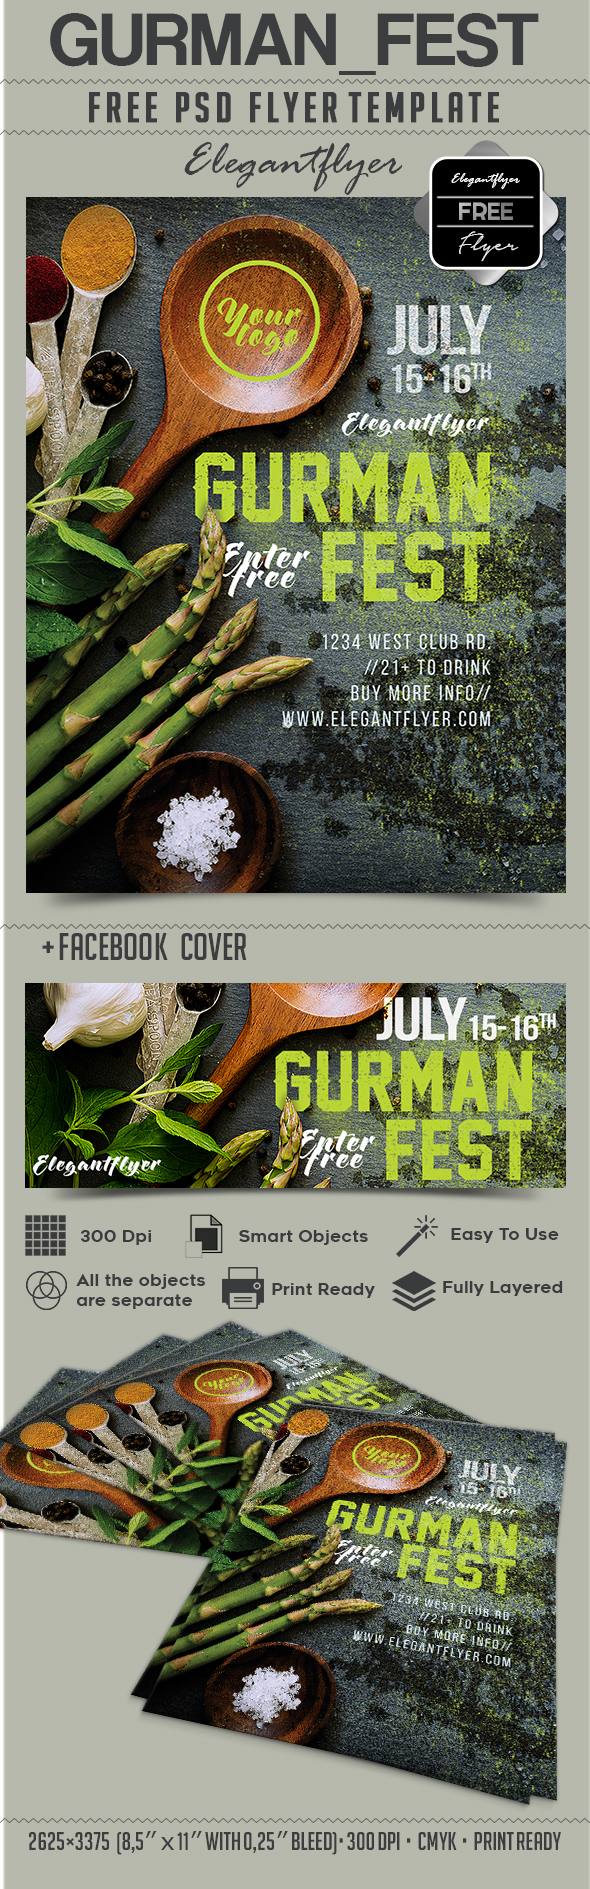 Gurman fest – Free Flyer PSD Template